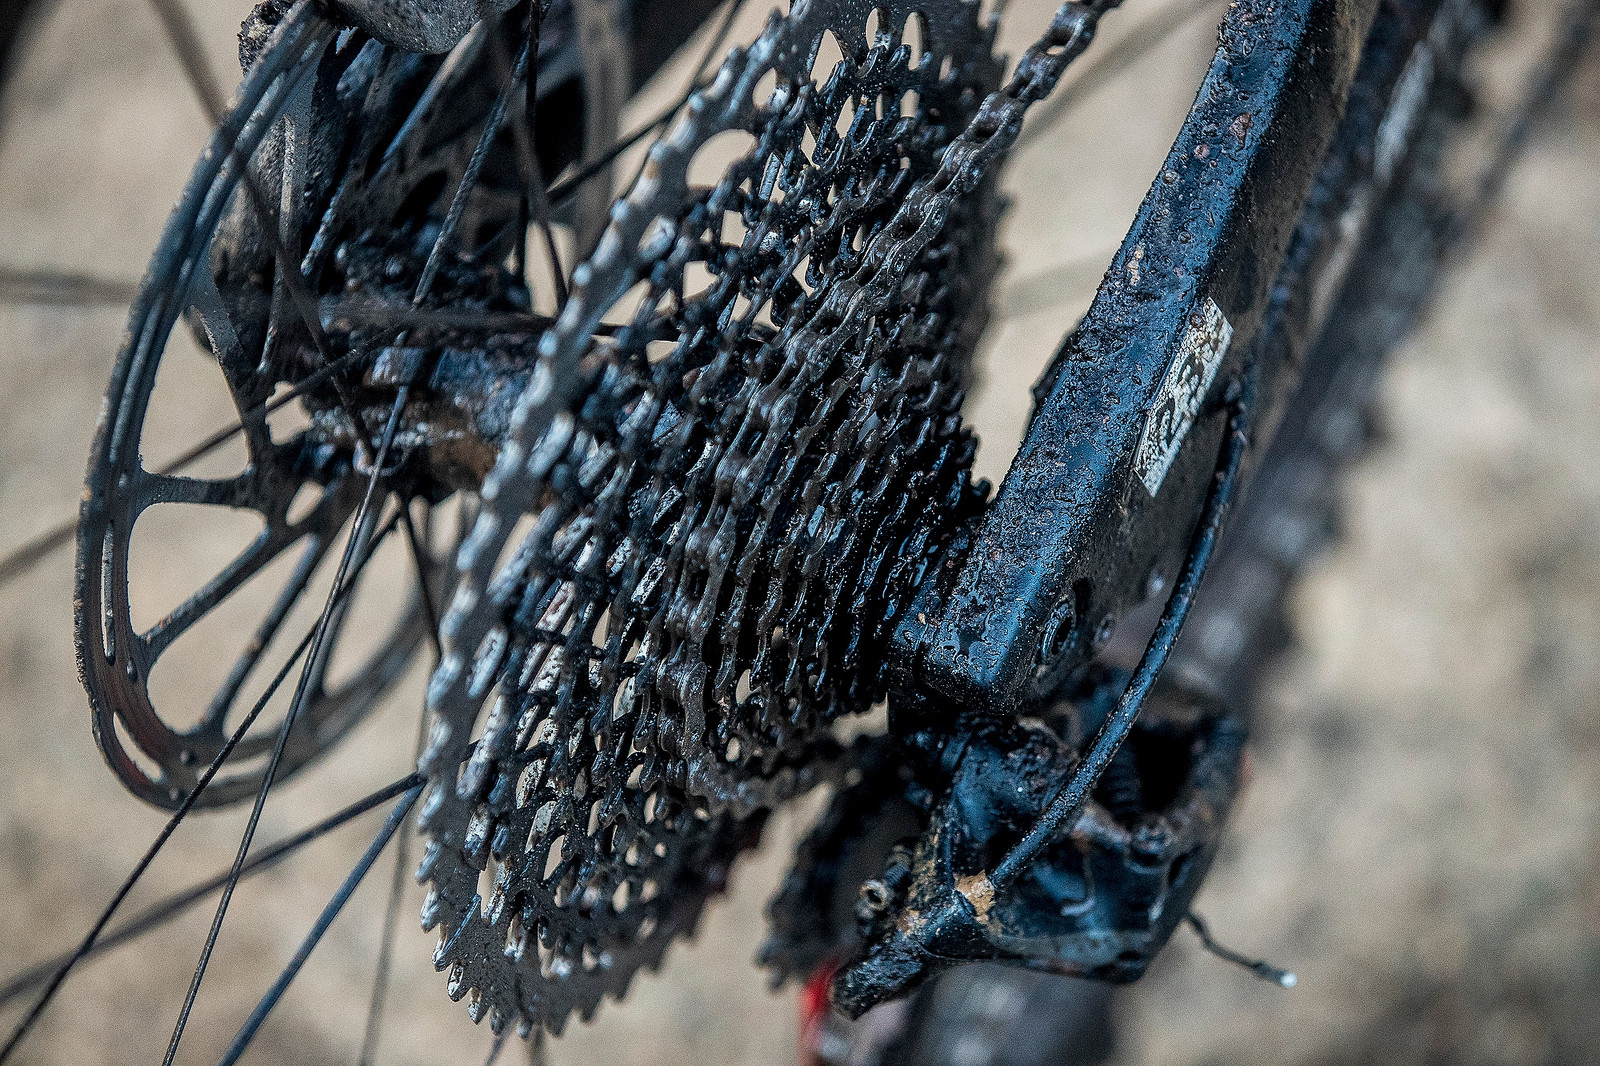 SRAM Eagle 10-50t cassette, you can never have enough help on the uphills when you've got 57 kms and 1700 meters of climbing to bang out in one day.